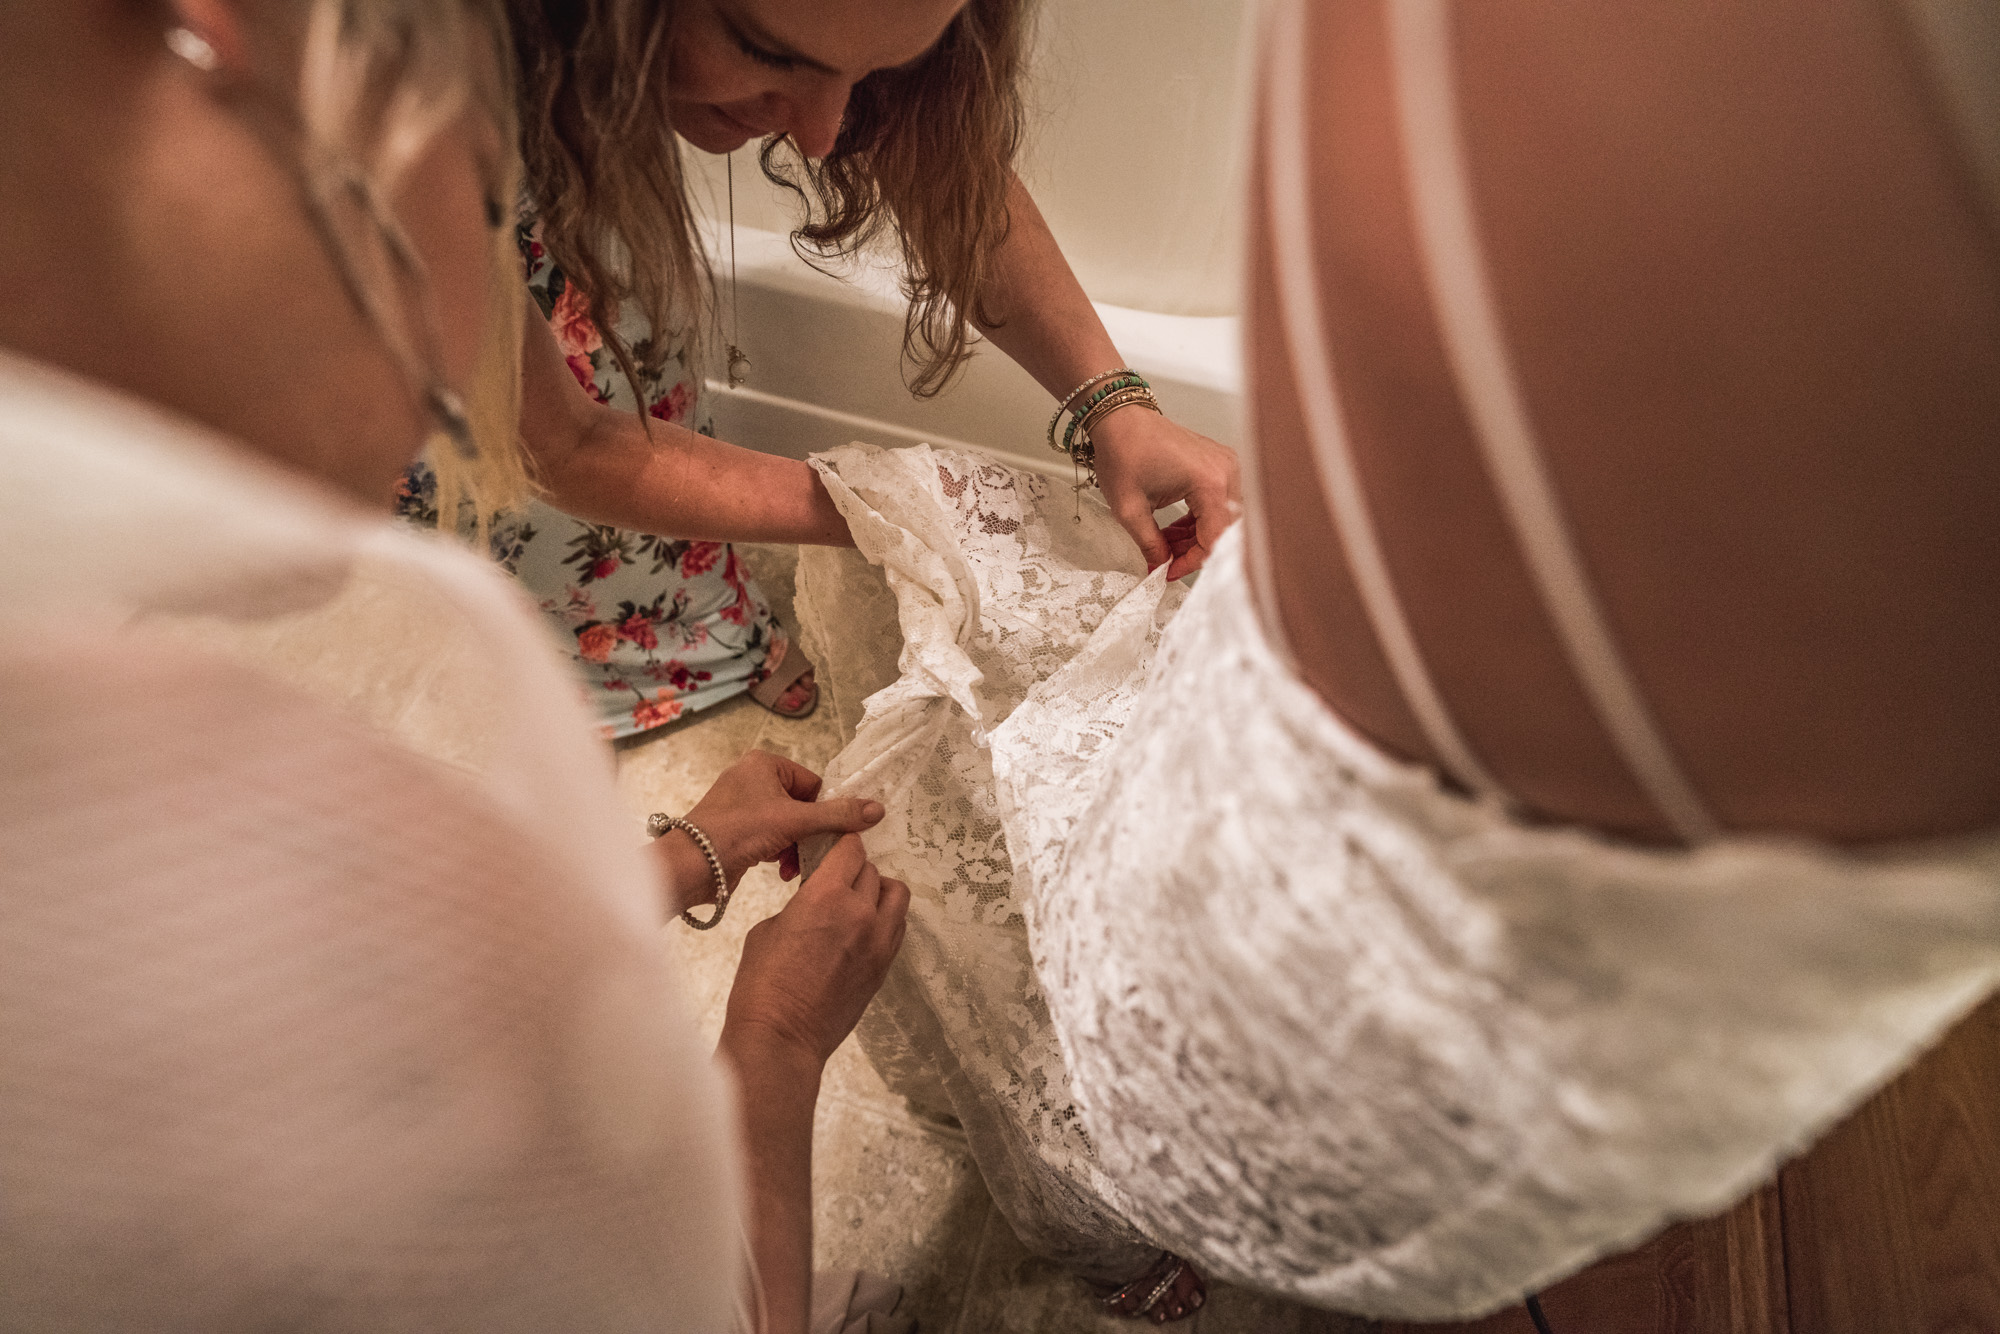 Overhead color photograph of two women attempting to bustle a bride's dress